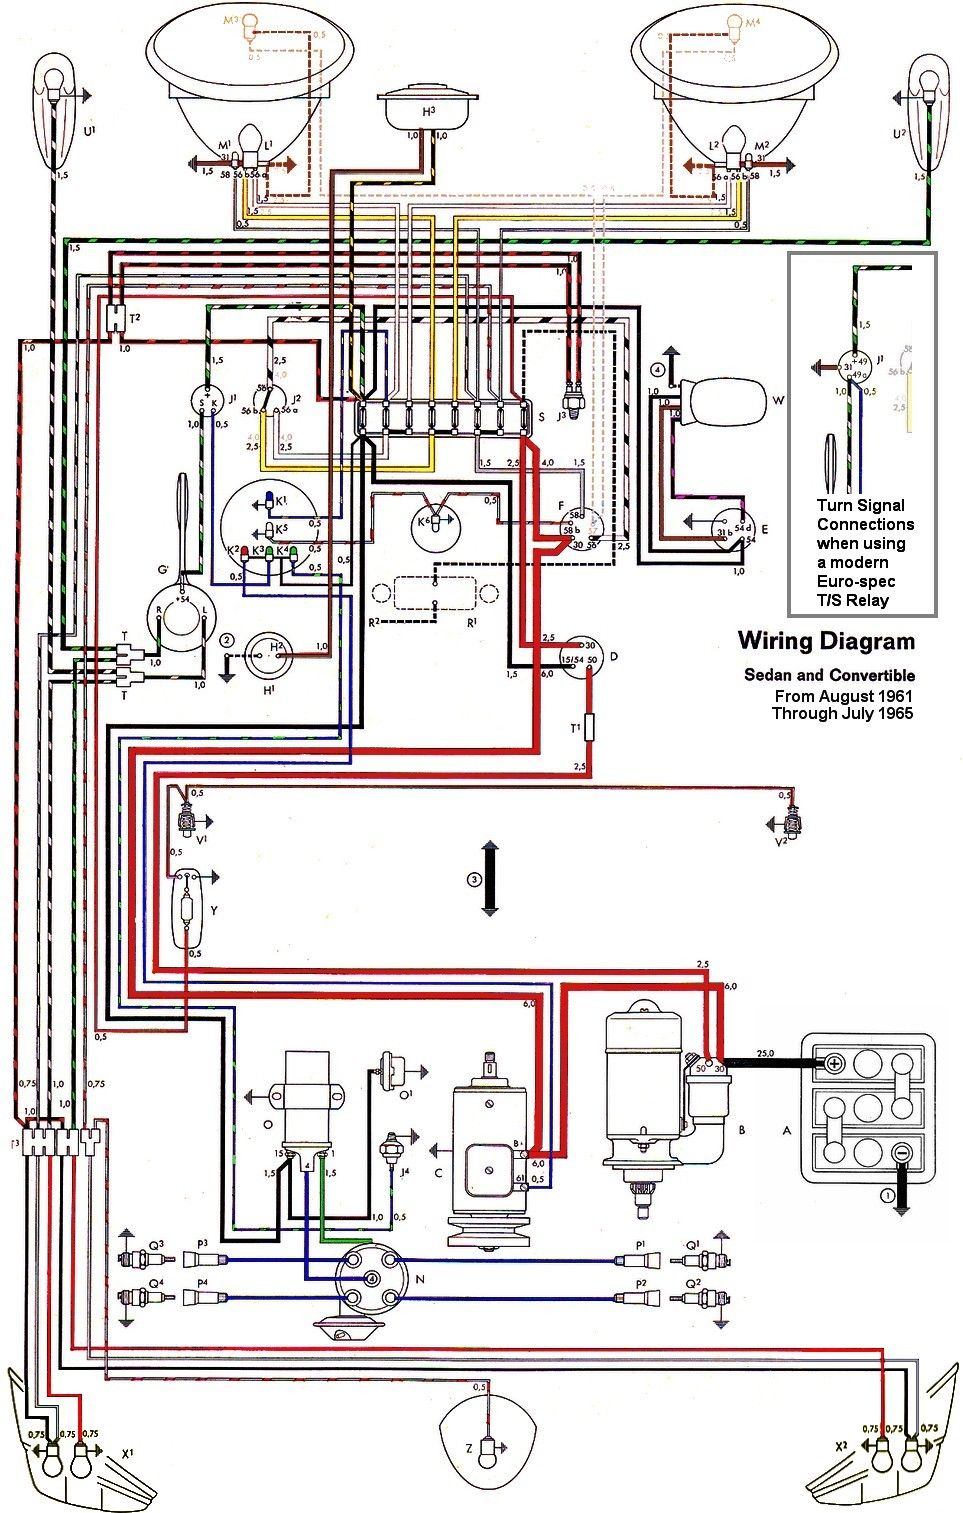 wiring diagram vw beetle sedan and convertible 1961 1965 vw in rh pinterest com vw beetle wiring loom vw beetle wiring loom